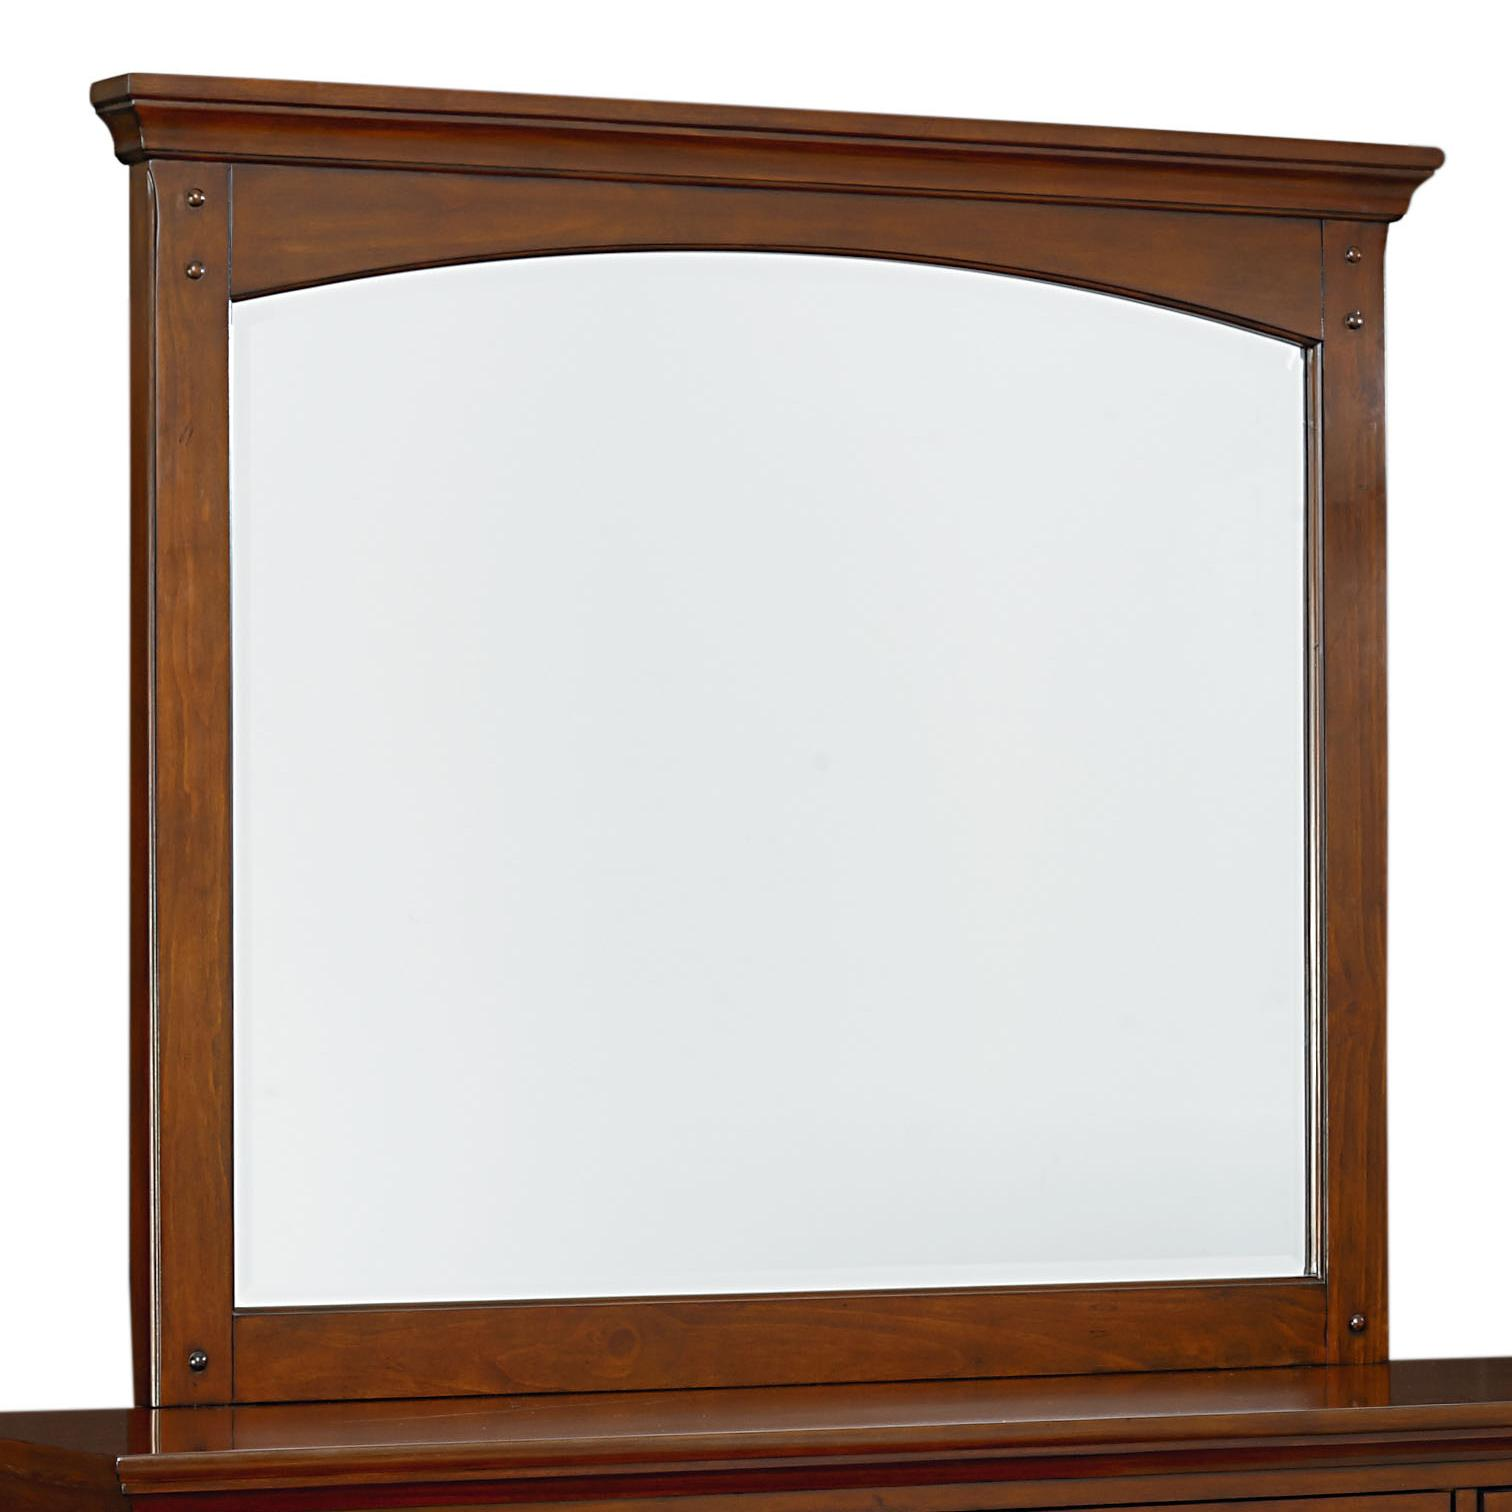 Standard Furniture Cooperstown Mirror - Item Number: 93808